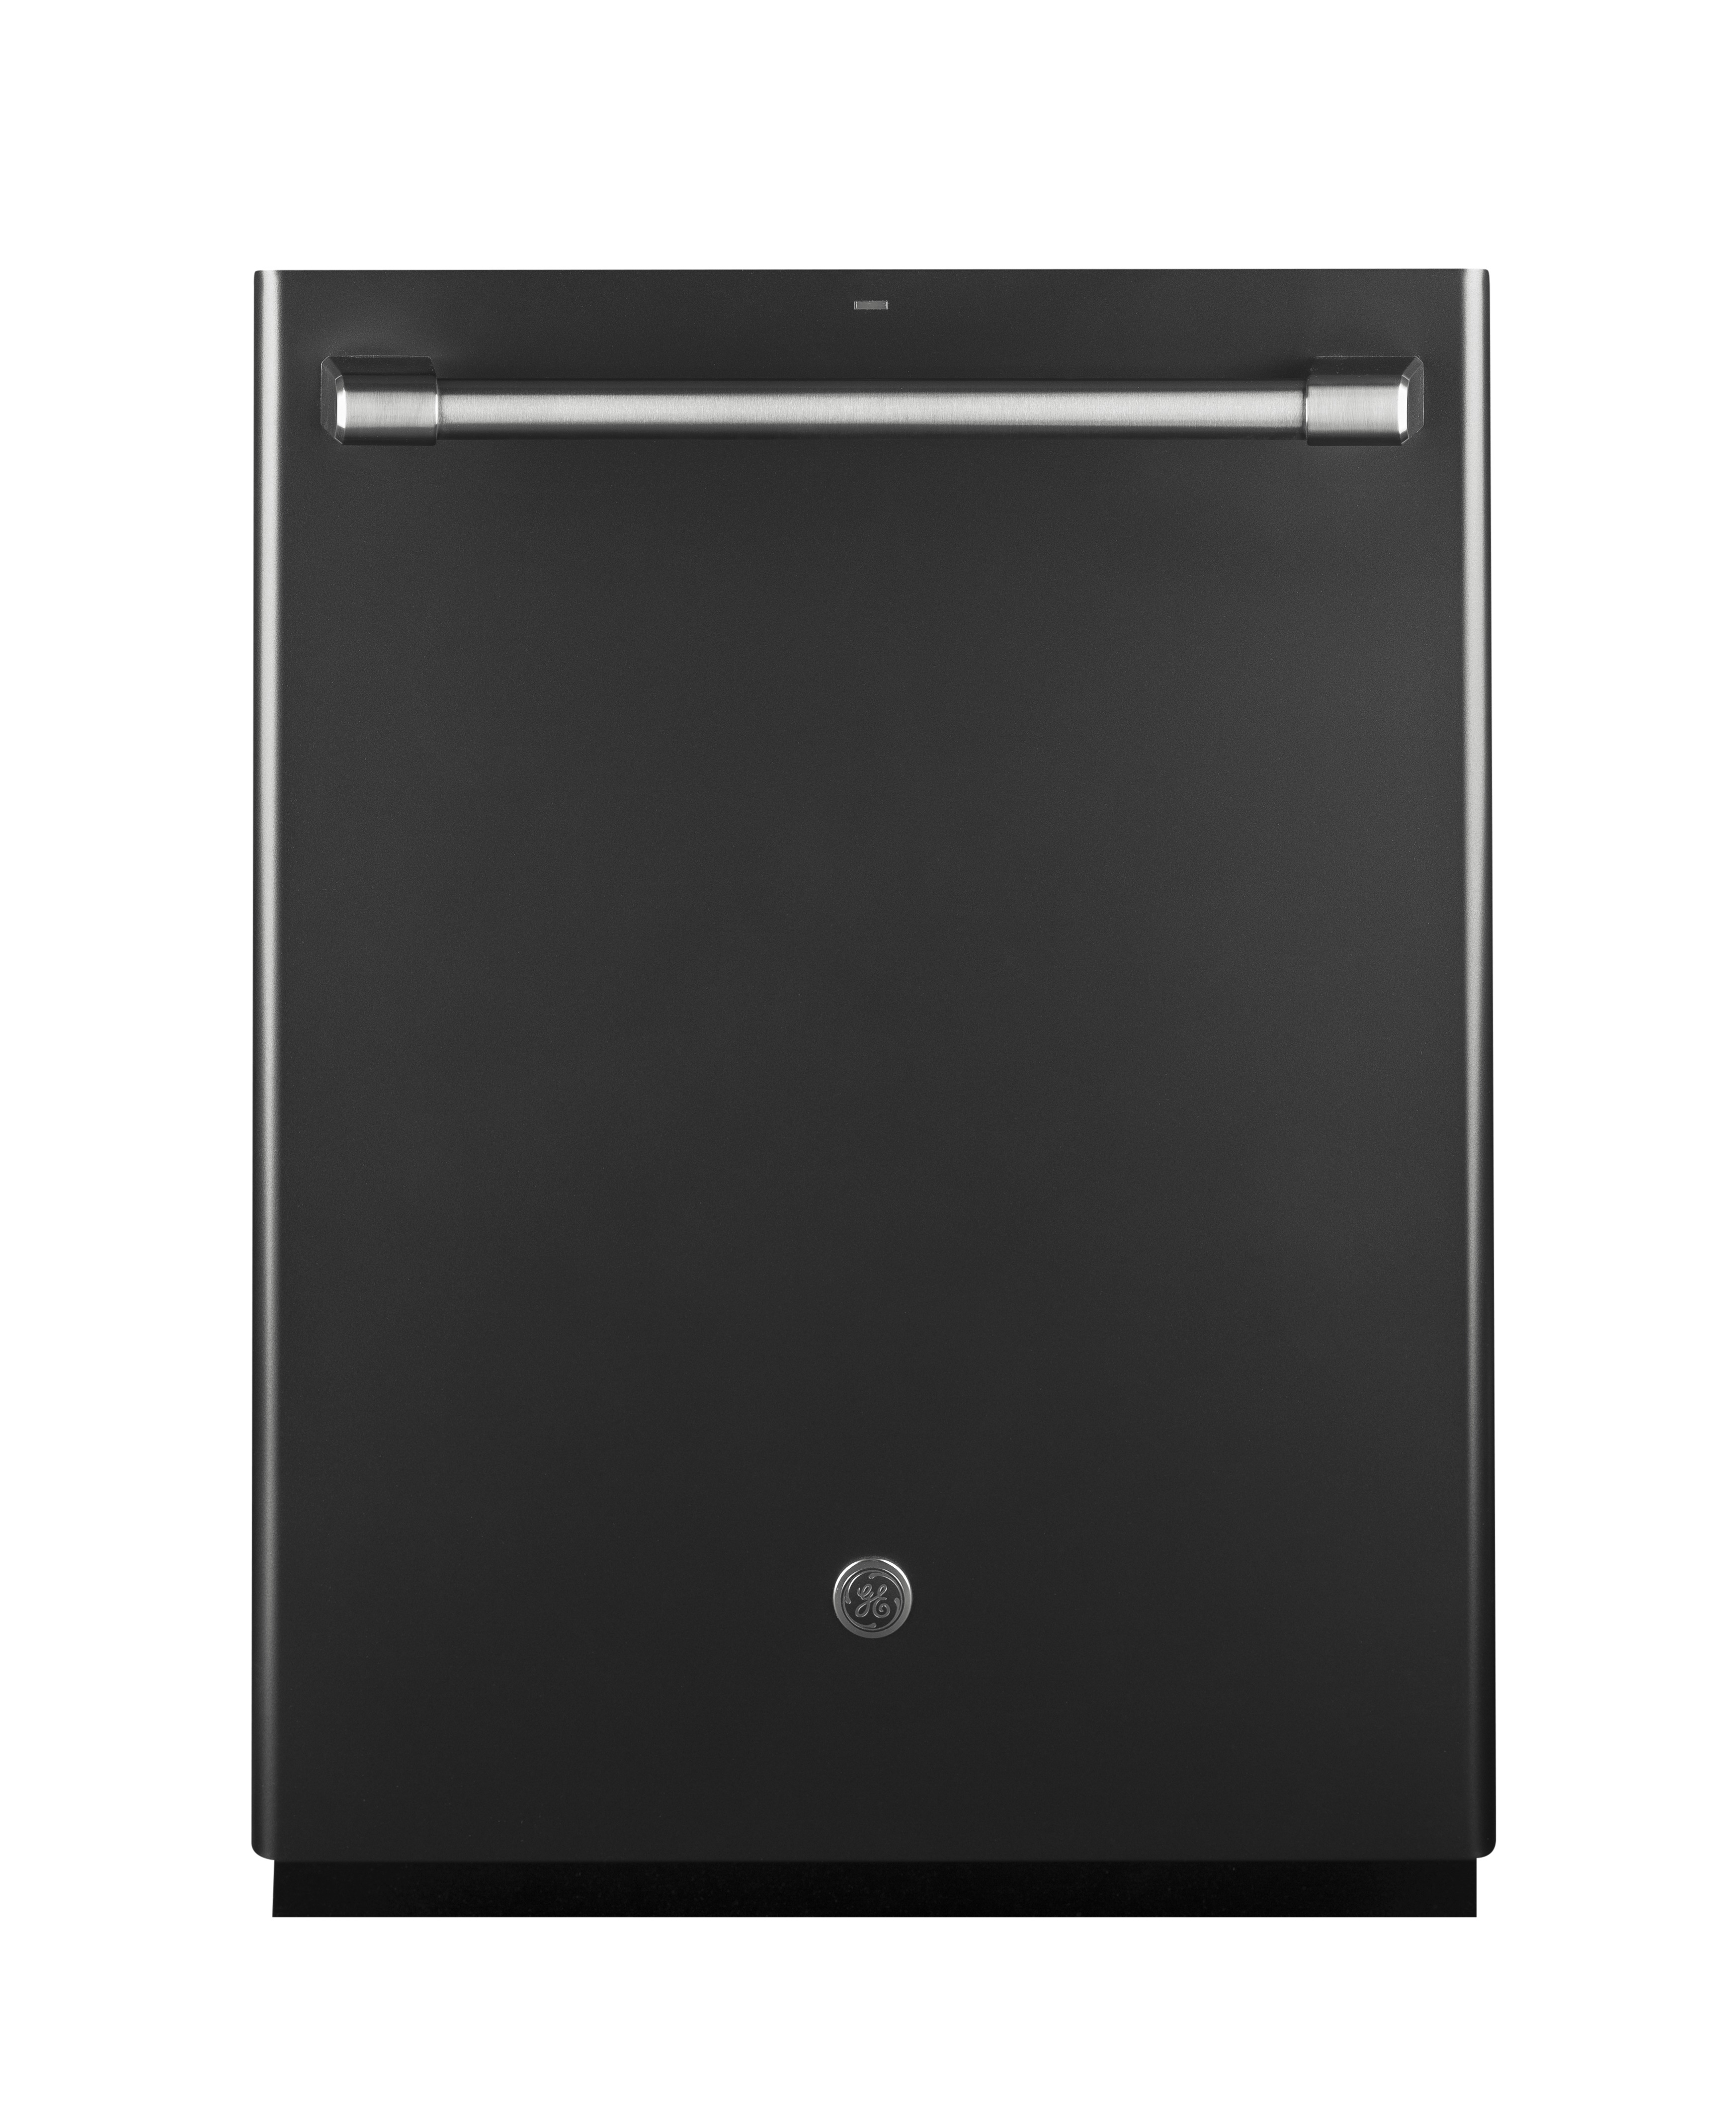 Engineered for Durability Designed for Distinction GE Appliances